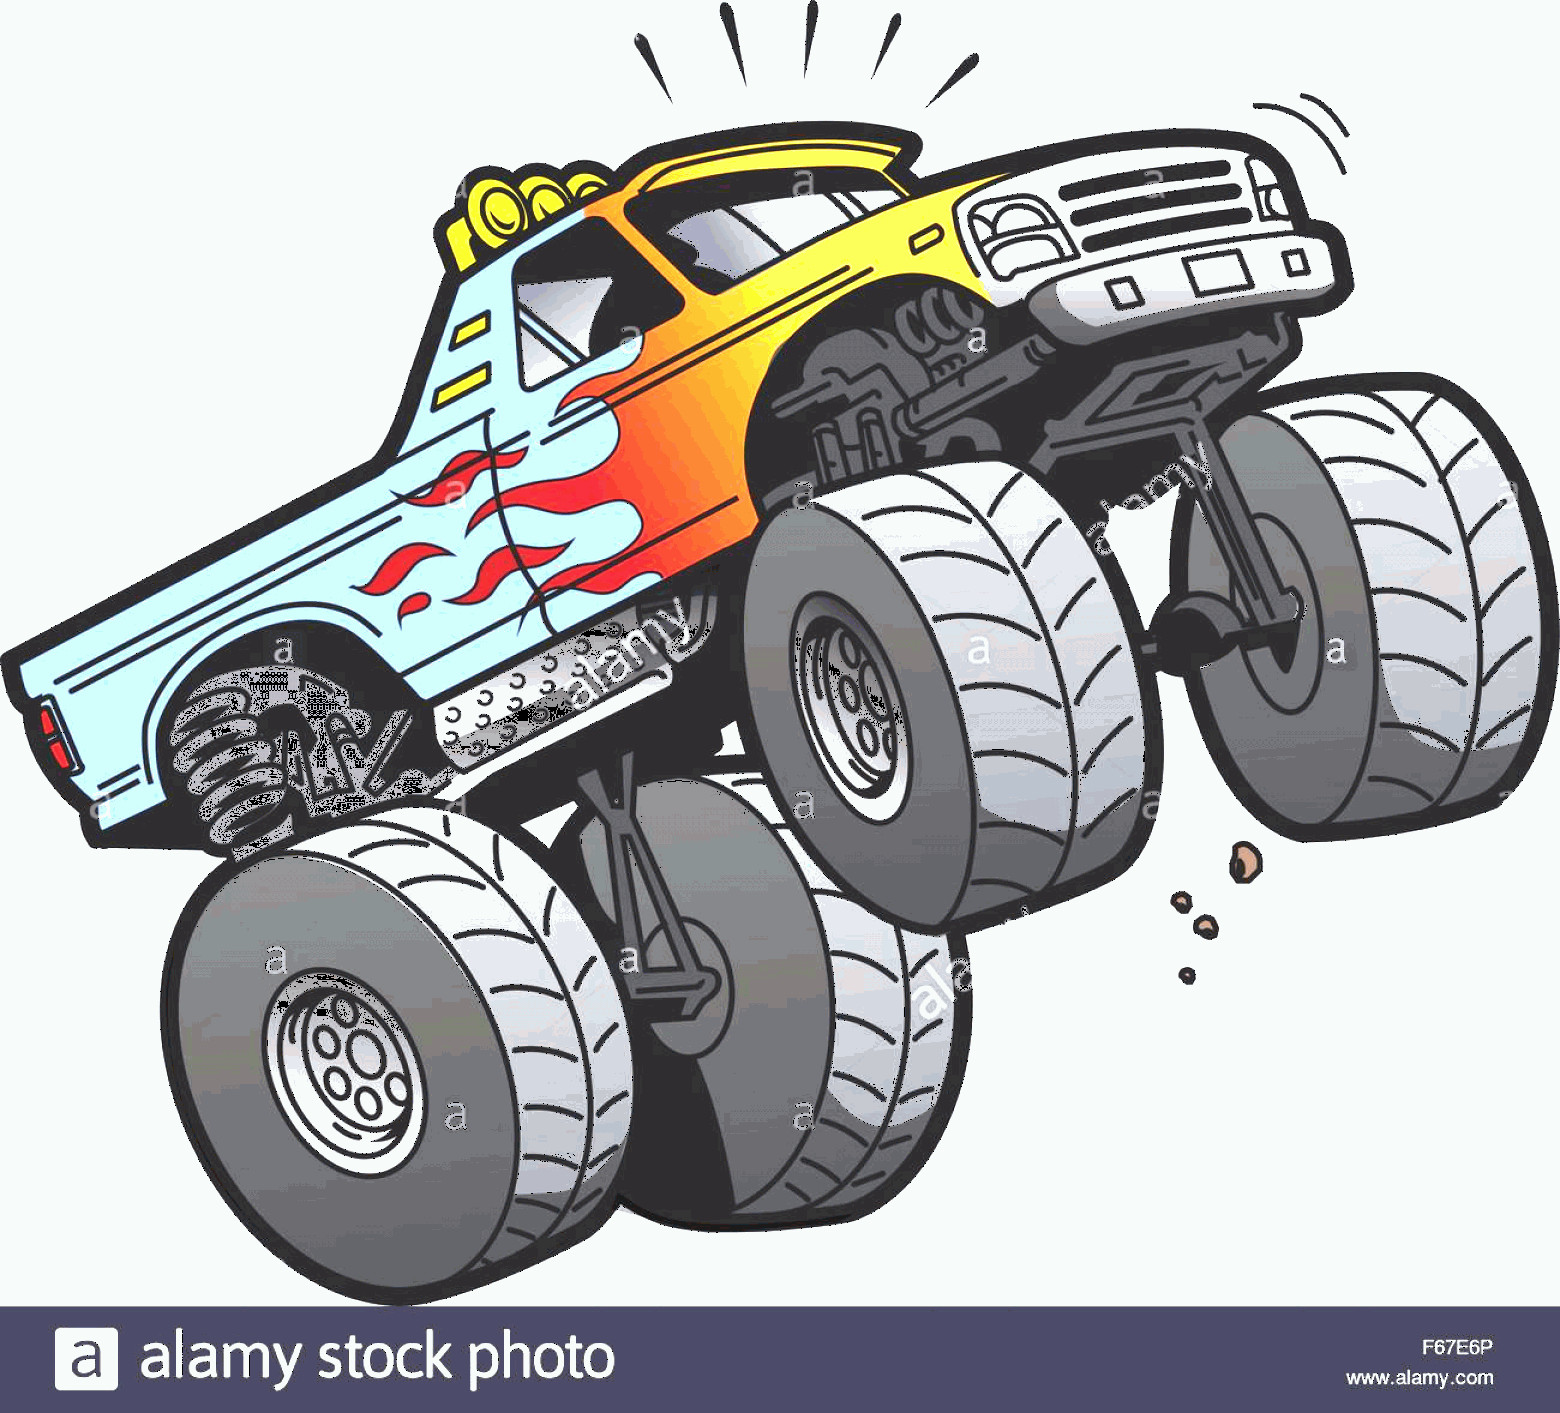 Monster Truck Tires Vector: Stock Photo Cartoon Illustration Of A Cool Monster Truck Jumping Or Doing A Wheelie